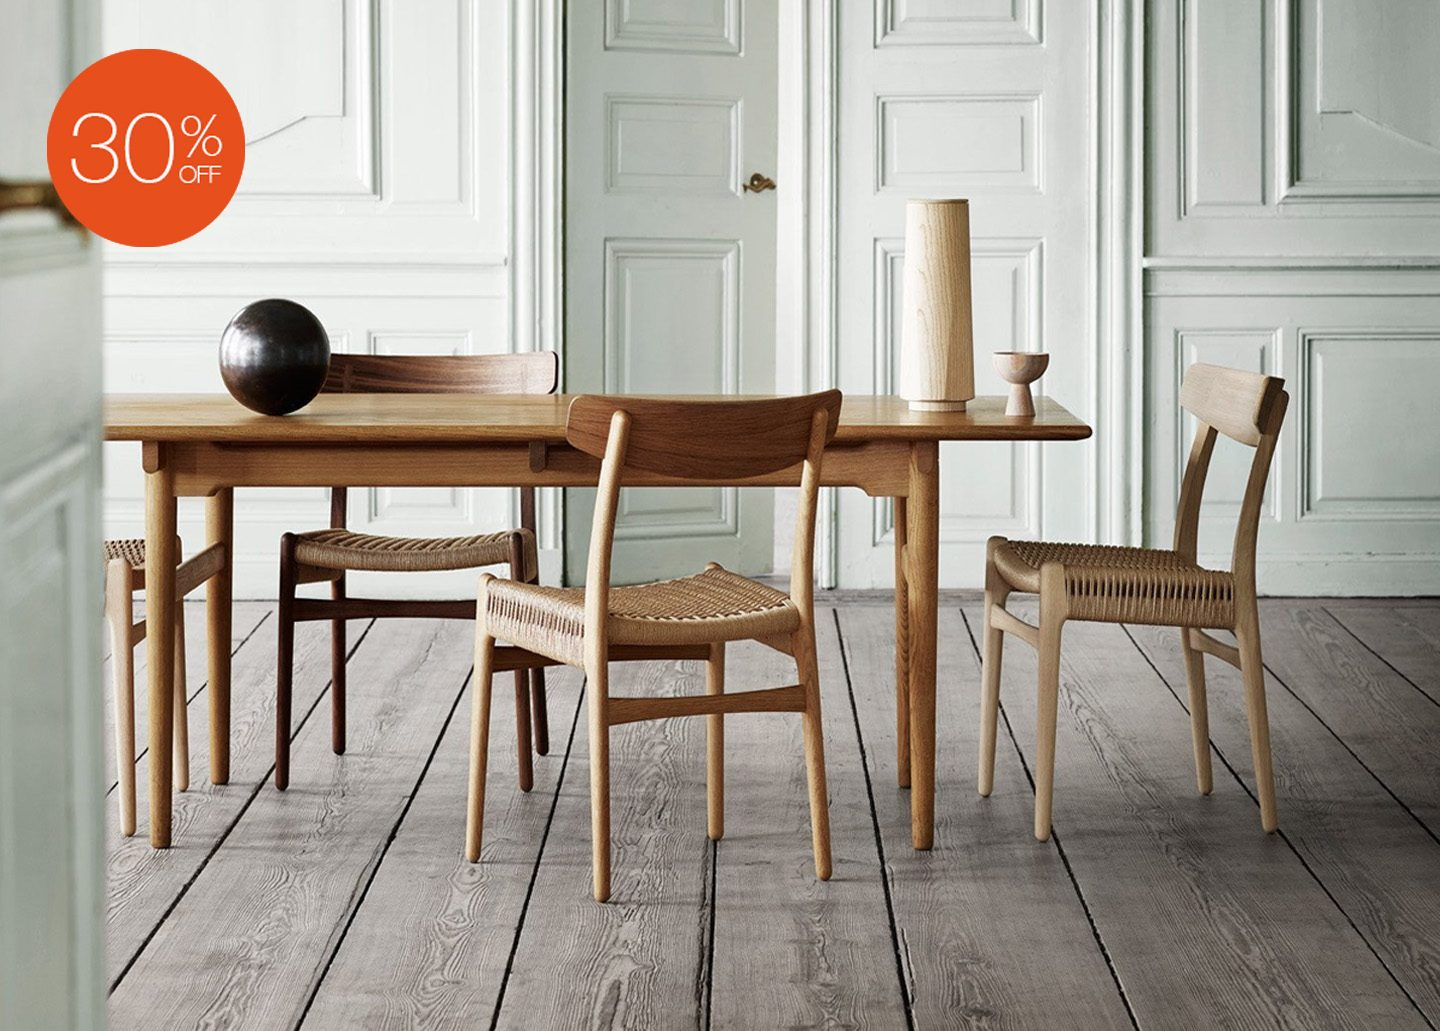 CH327 DINING TABLE BY CARL HANSEN